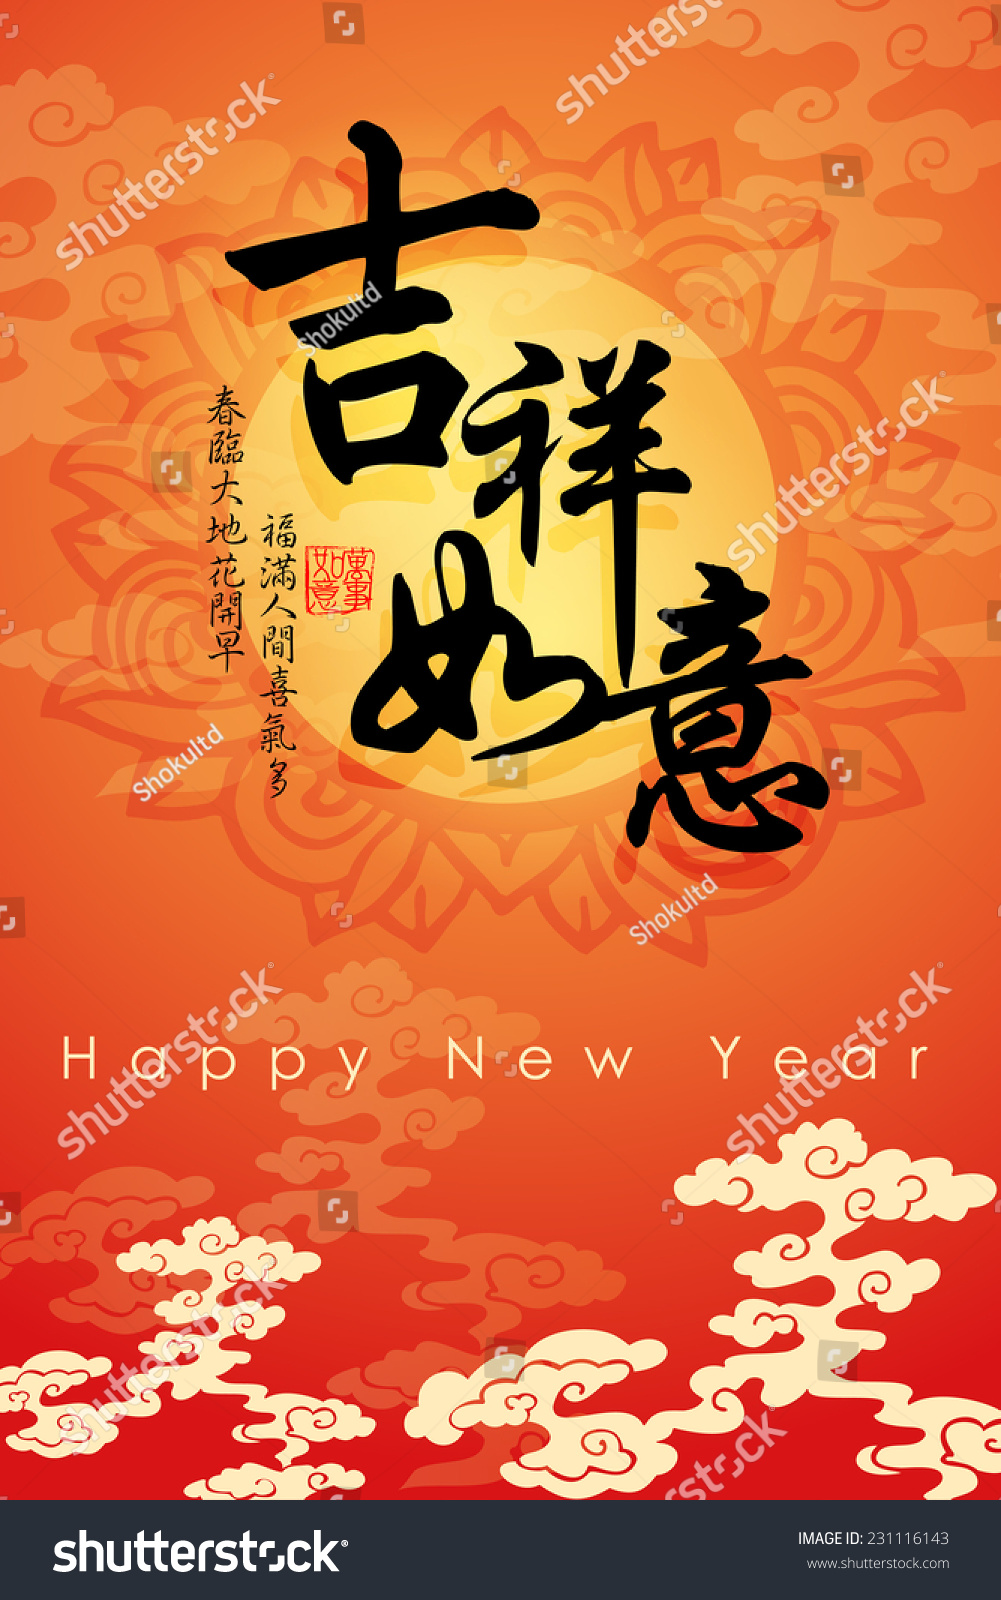 Chinese new year greeting card designtranslation stock chinese new year greeting card designanslation all the best anslation of small kristyandbryce Image collections